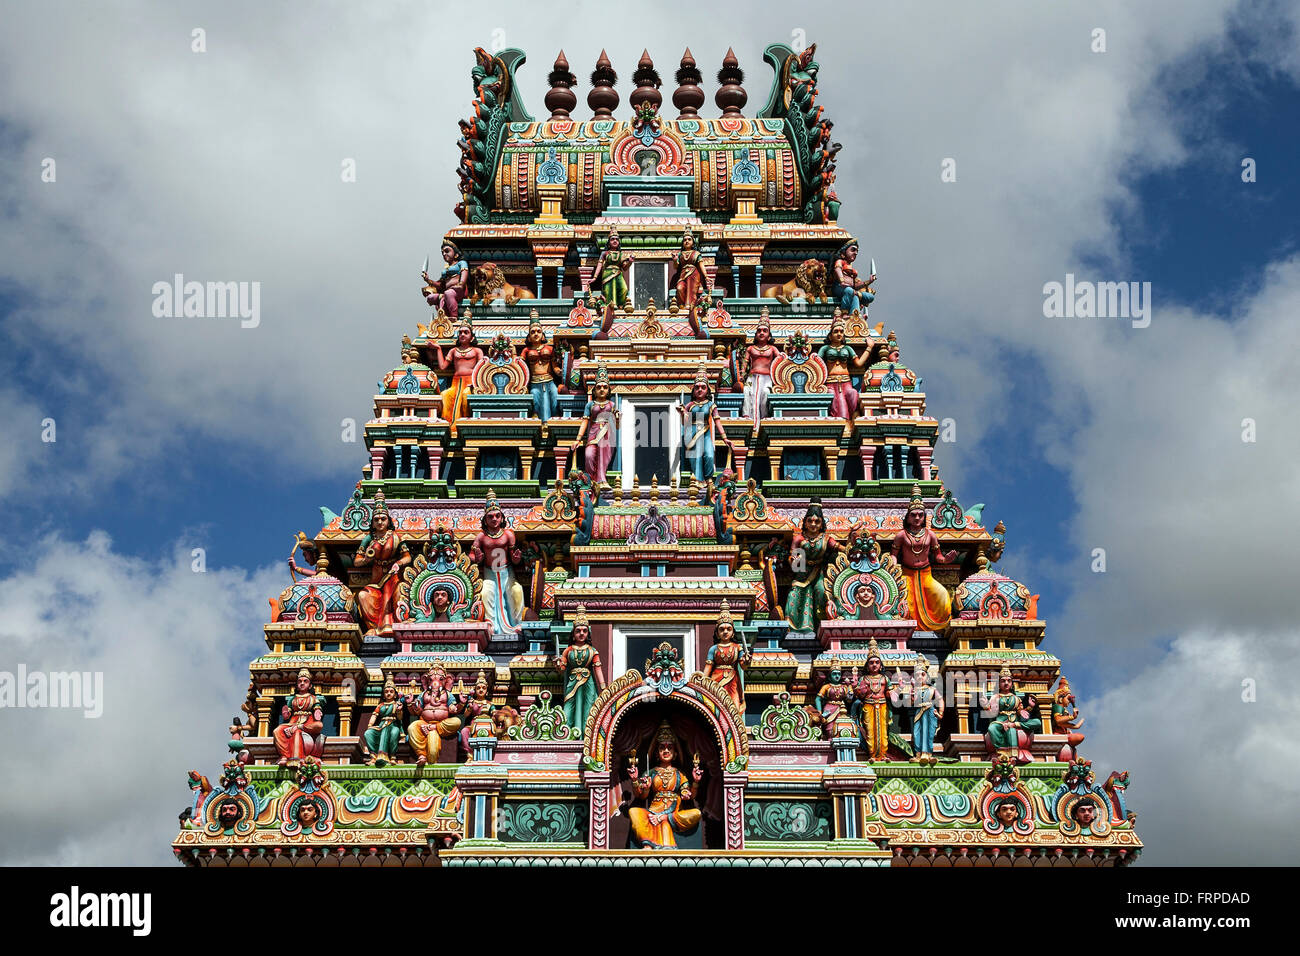 Hindu temple in Rose Belle, Mauritius - Stock Image